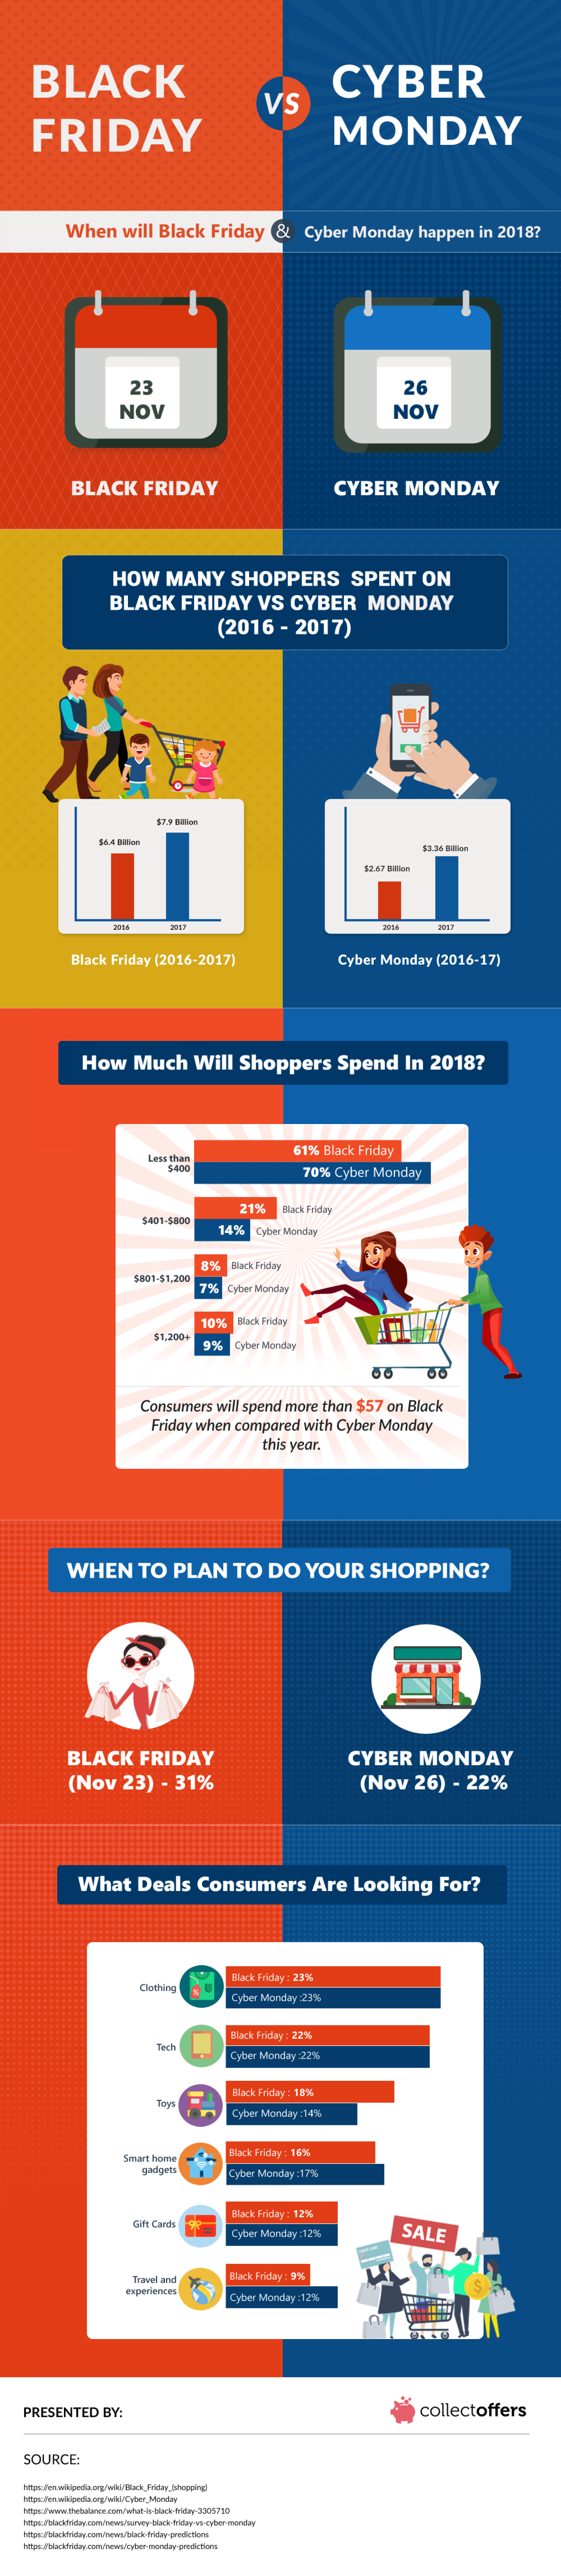 Is It Better To Shop On Black Friday or Cyber Monday? Infographic